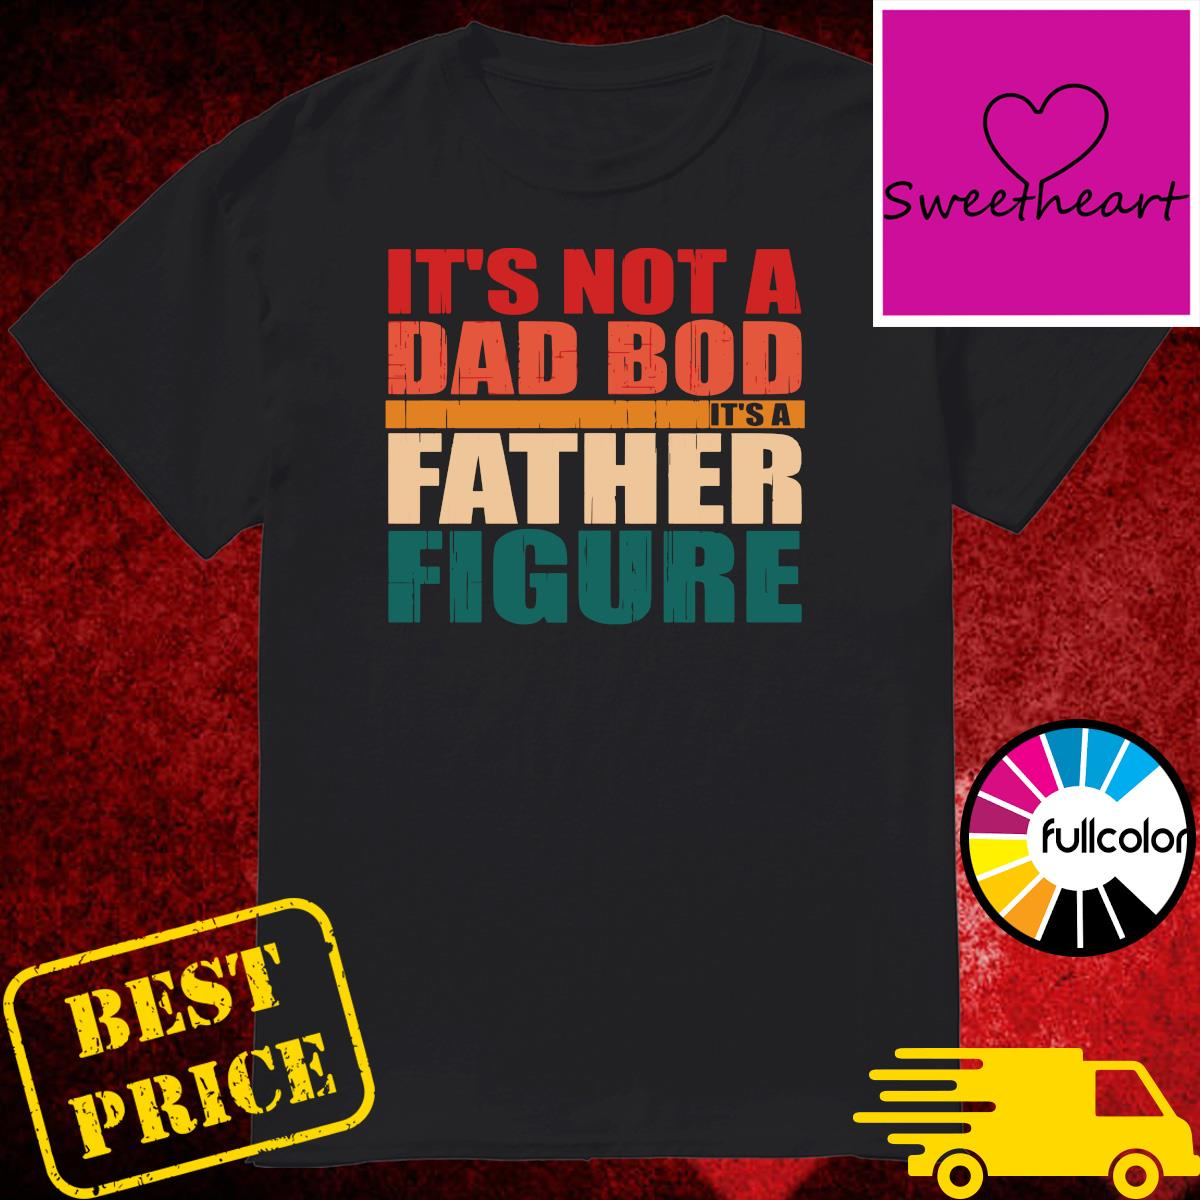 Official Father's Day 2021 - It's Not A Dad Bod It's A Father Figure Shirt